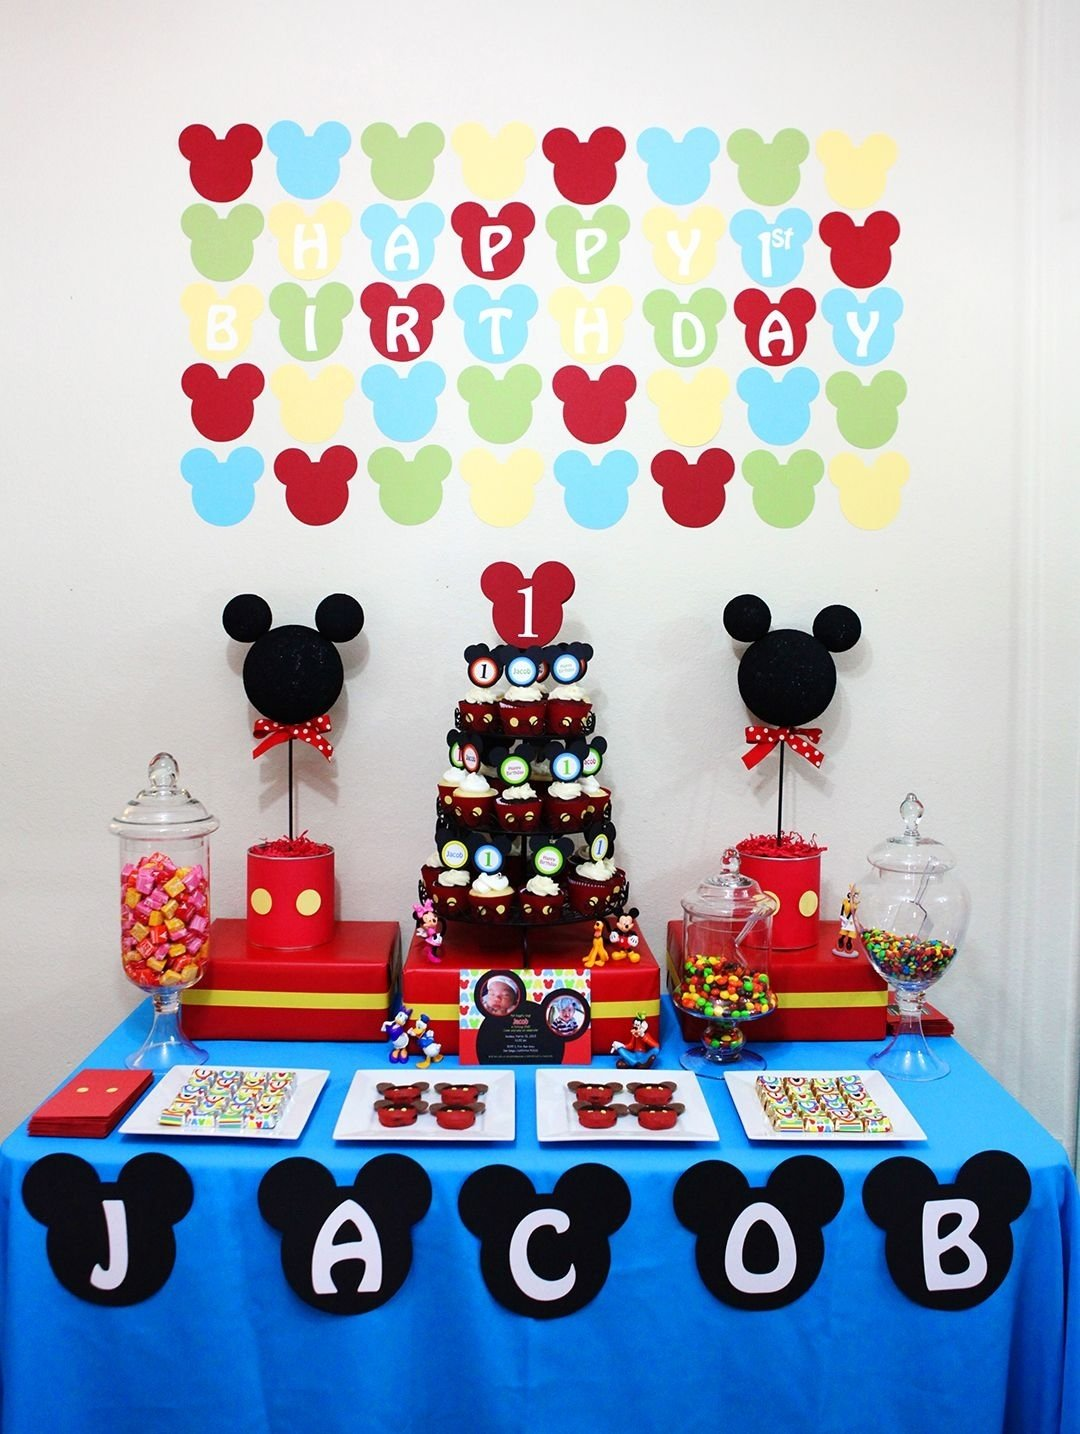 10 Fantastic Mickey Mouse Themed Birthday Party Ideas mickey mouse party ideas mickey mouse party ideas pinterest 3 2020